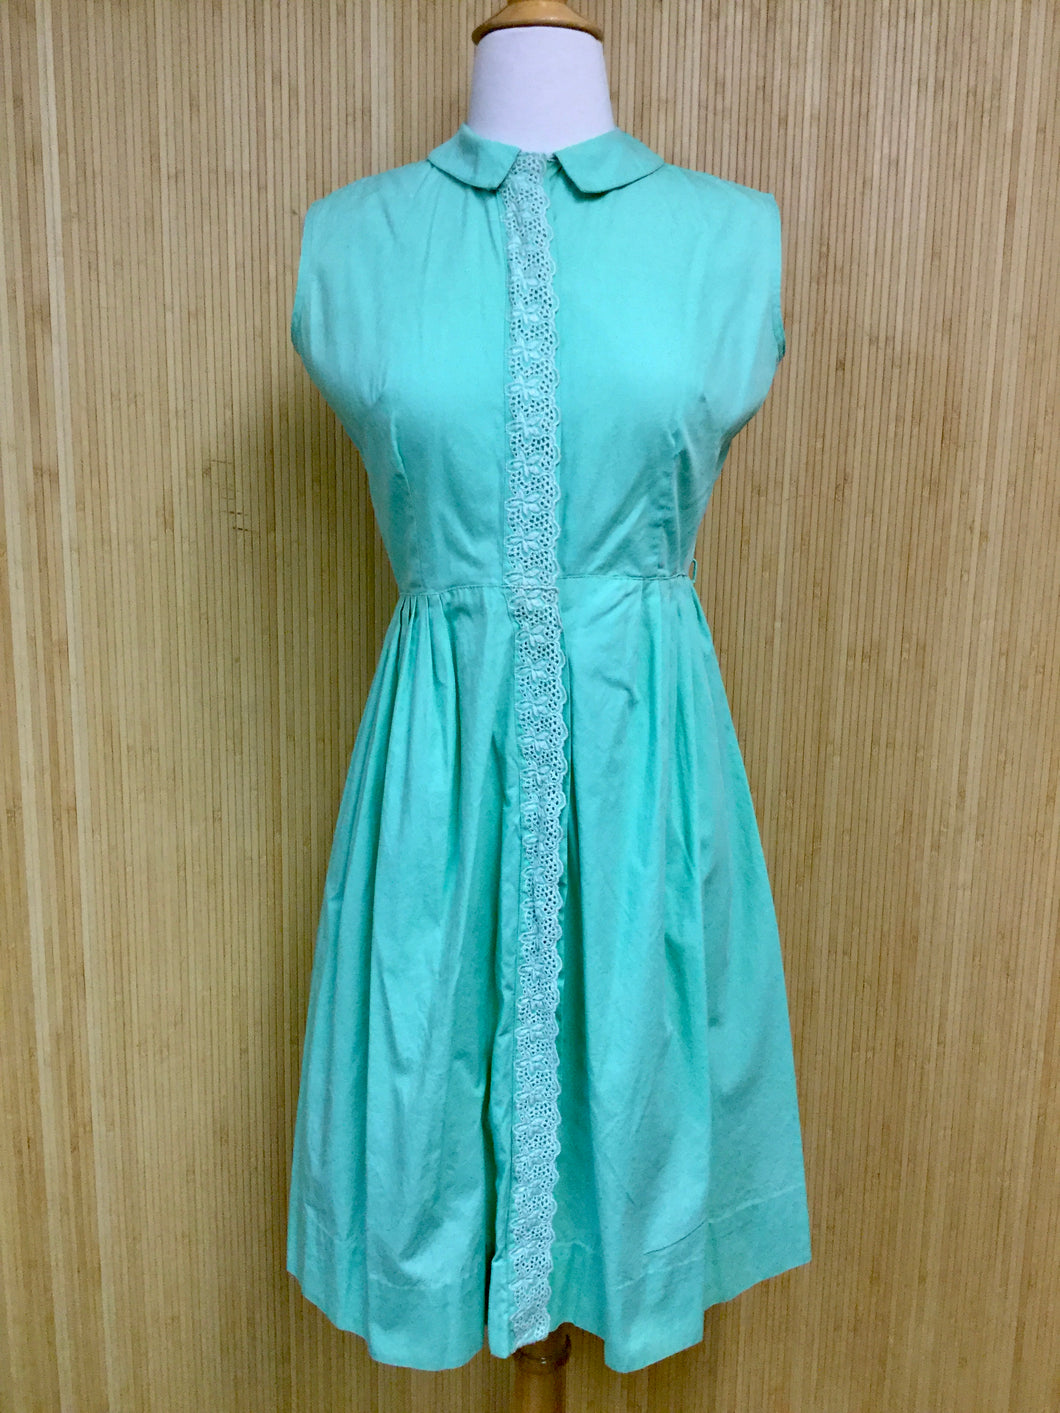 Shirtwaist Classic Cotton Dress (XS)